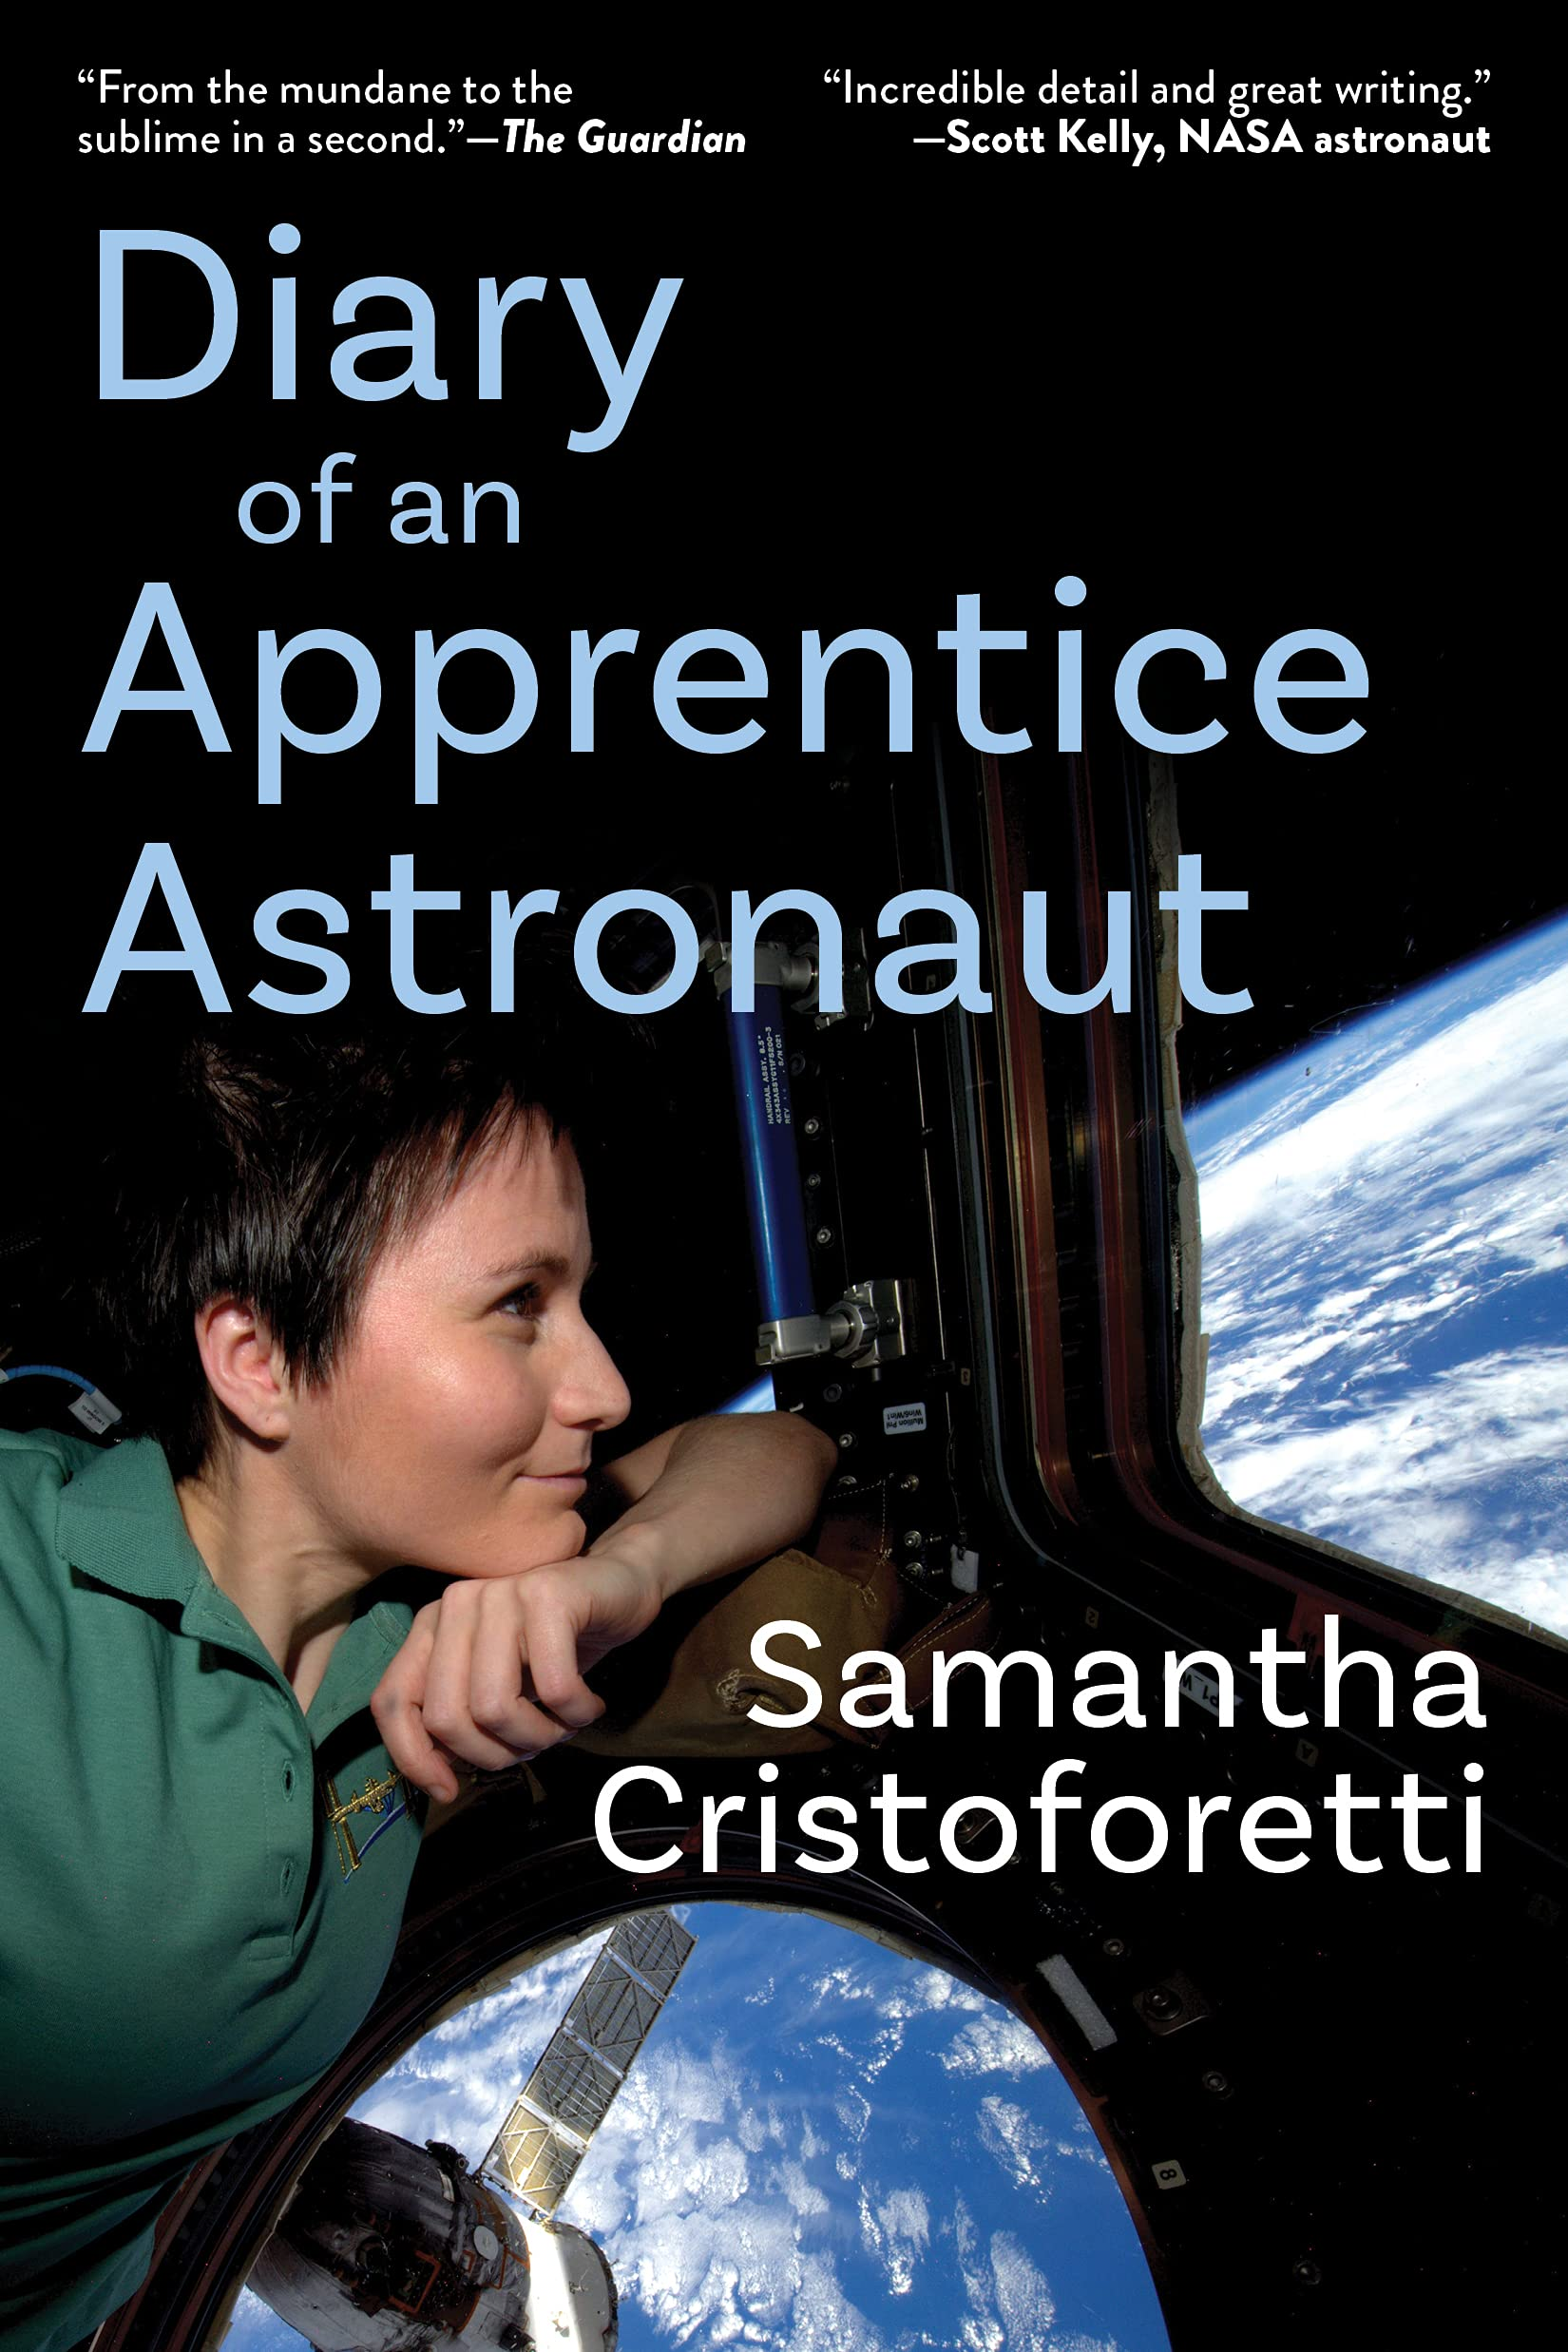 Book Review – Diary of an Apprentice Astronaut, Samantha Cristoforetti, 2020